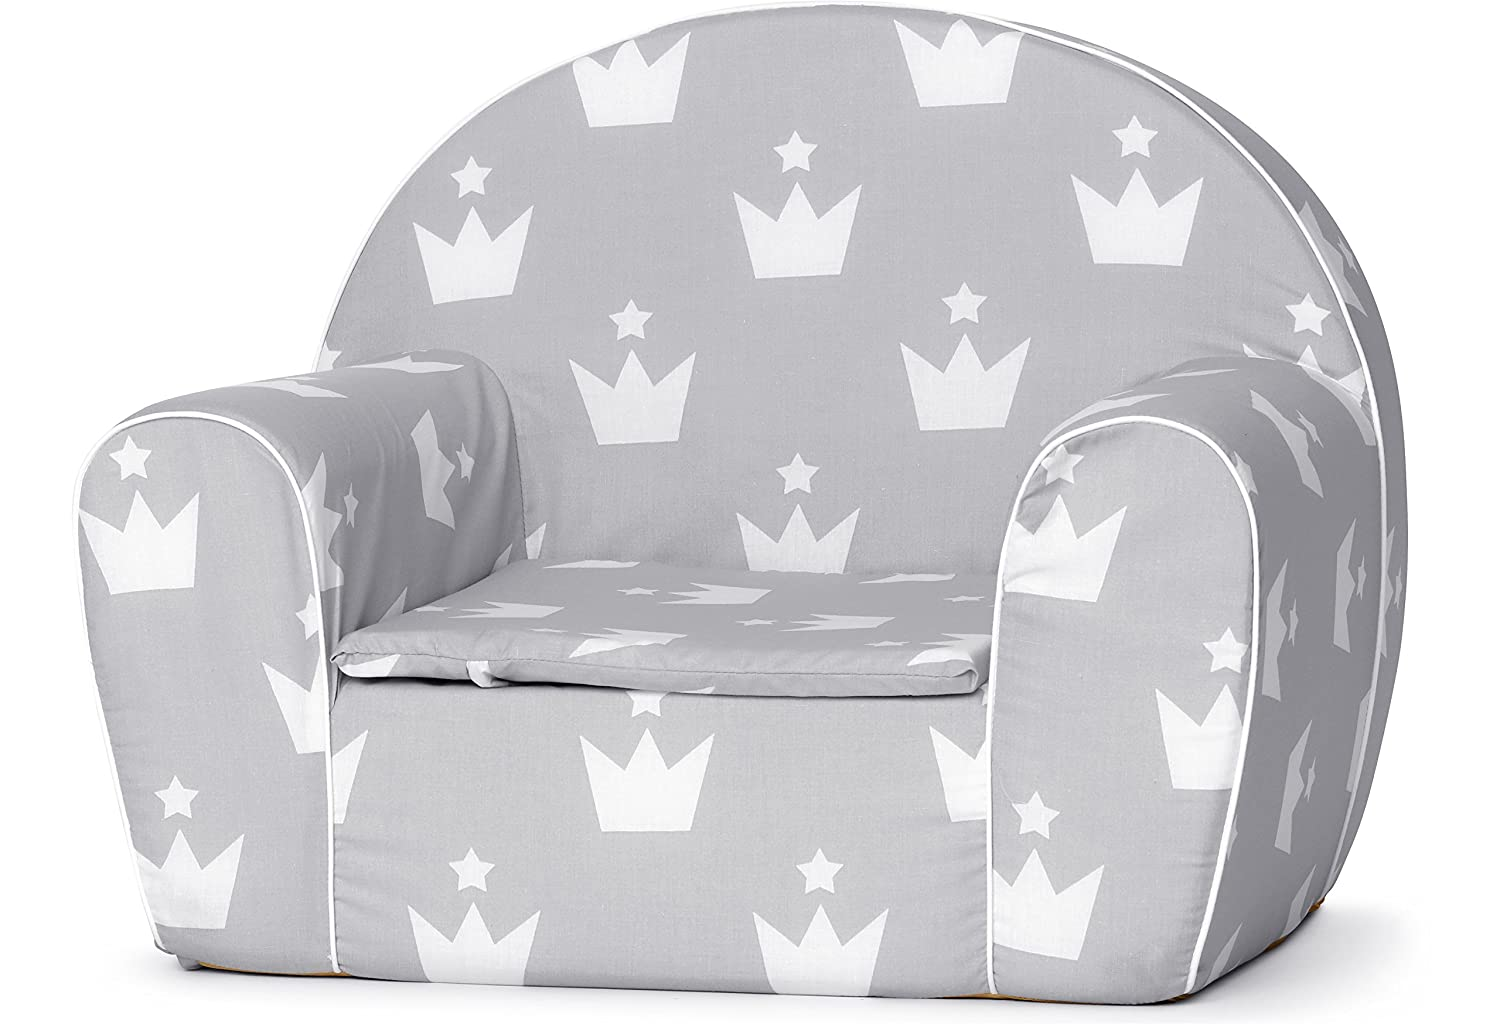 Ladeheid Children's armchair Couch With Bed Funktion LATE1001 (Ecru/Owls, 37 x 43 x 53 cm)